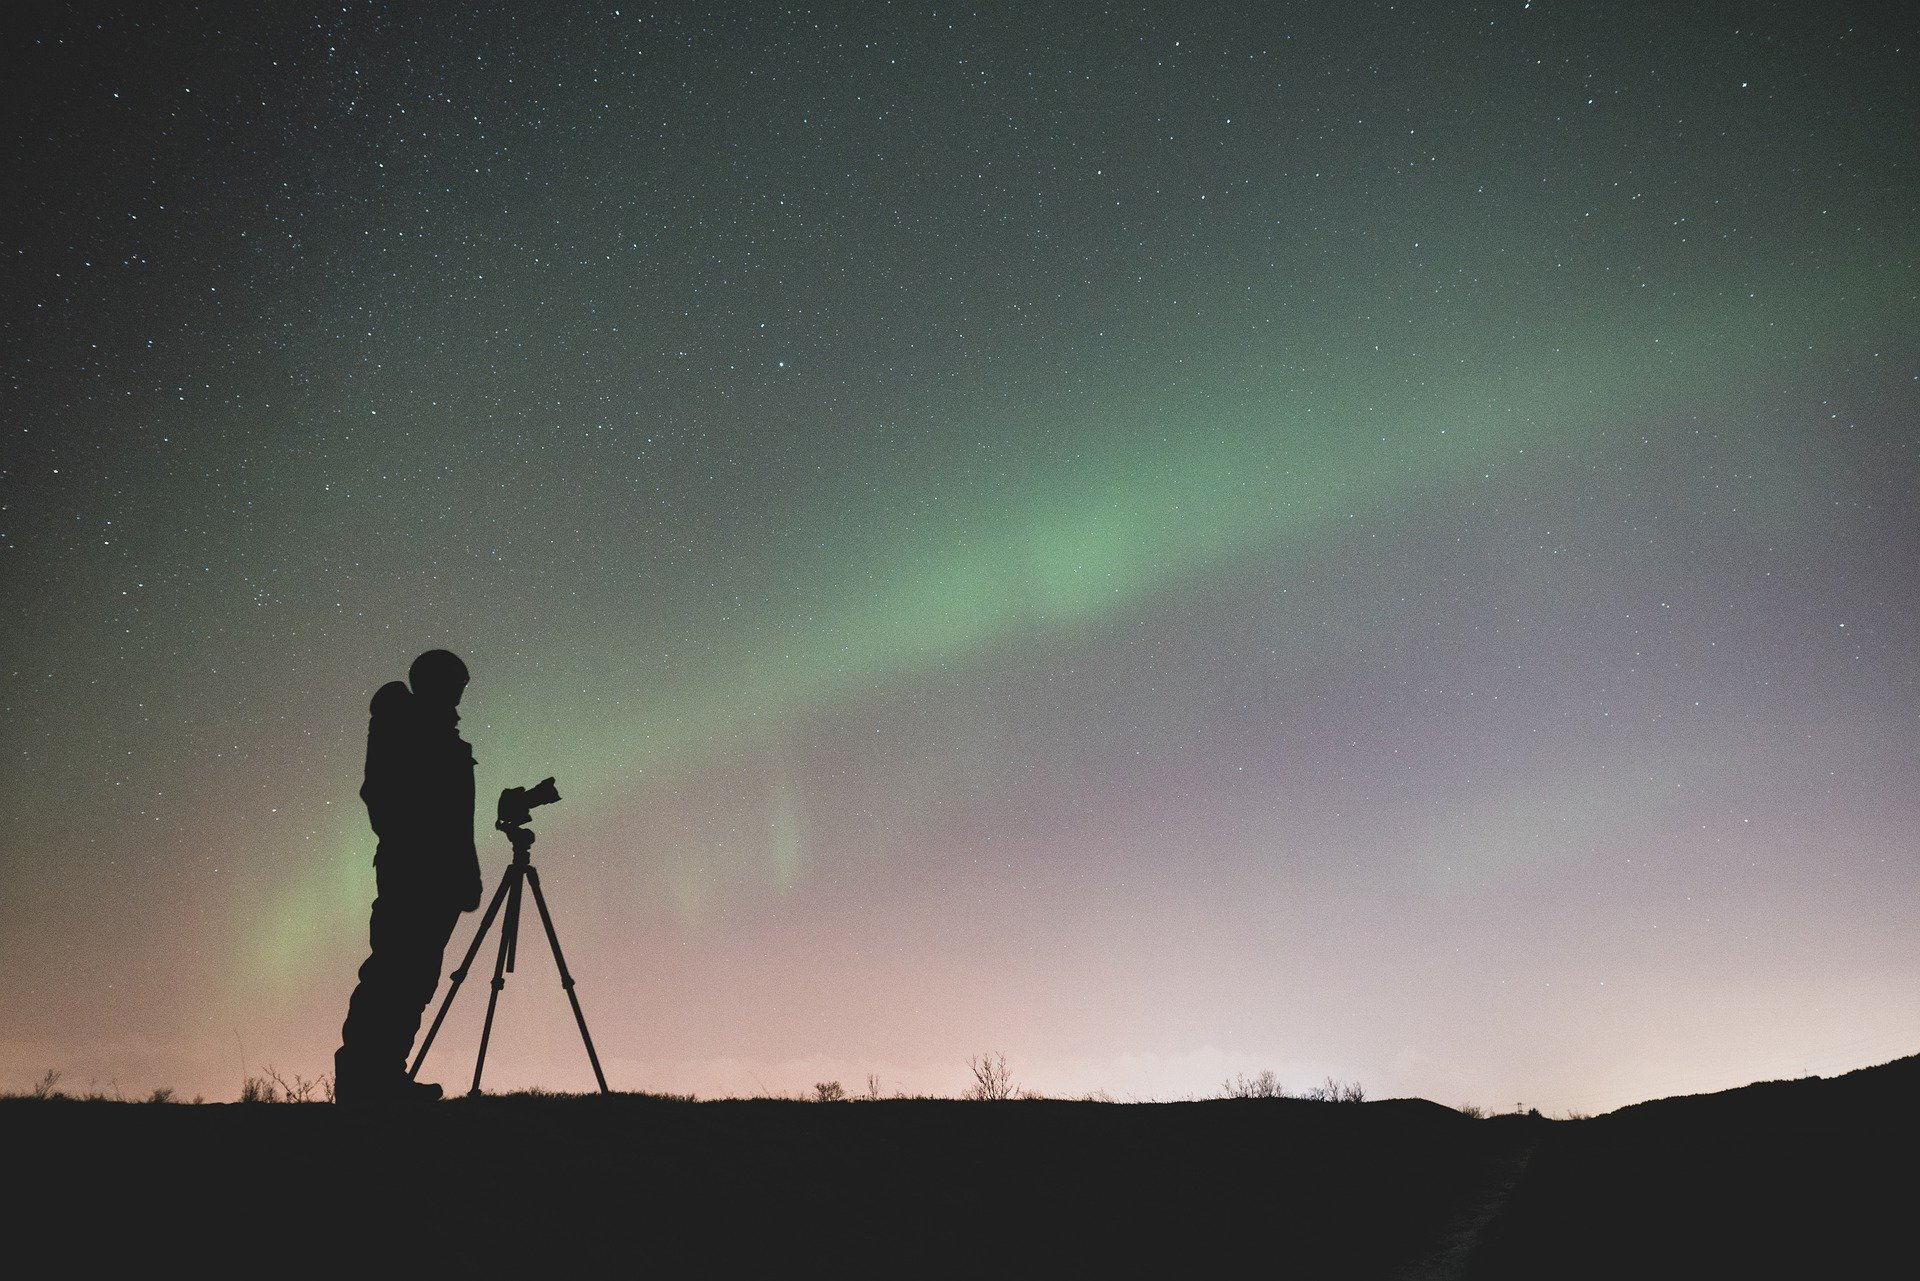 silhouette of a photographer against northern lights